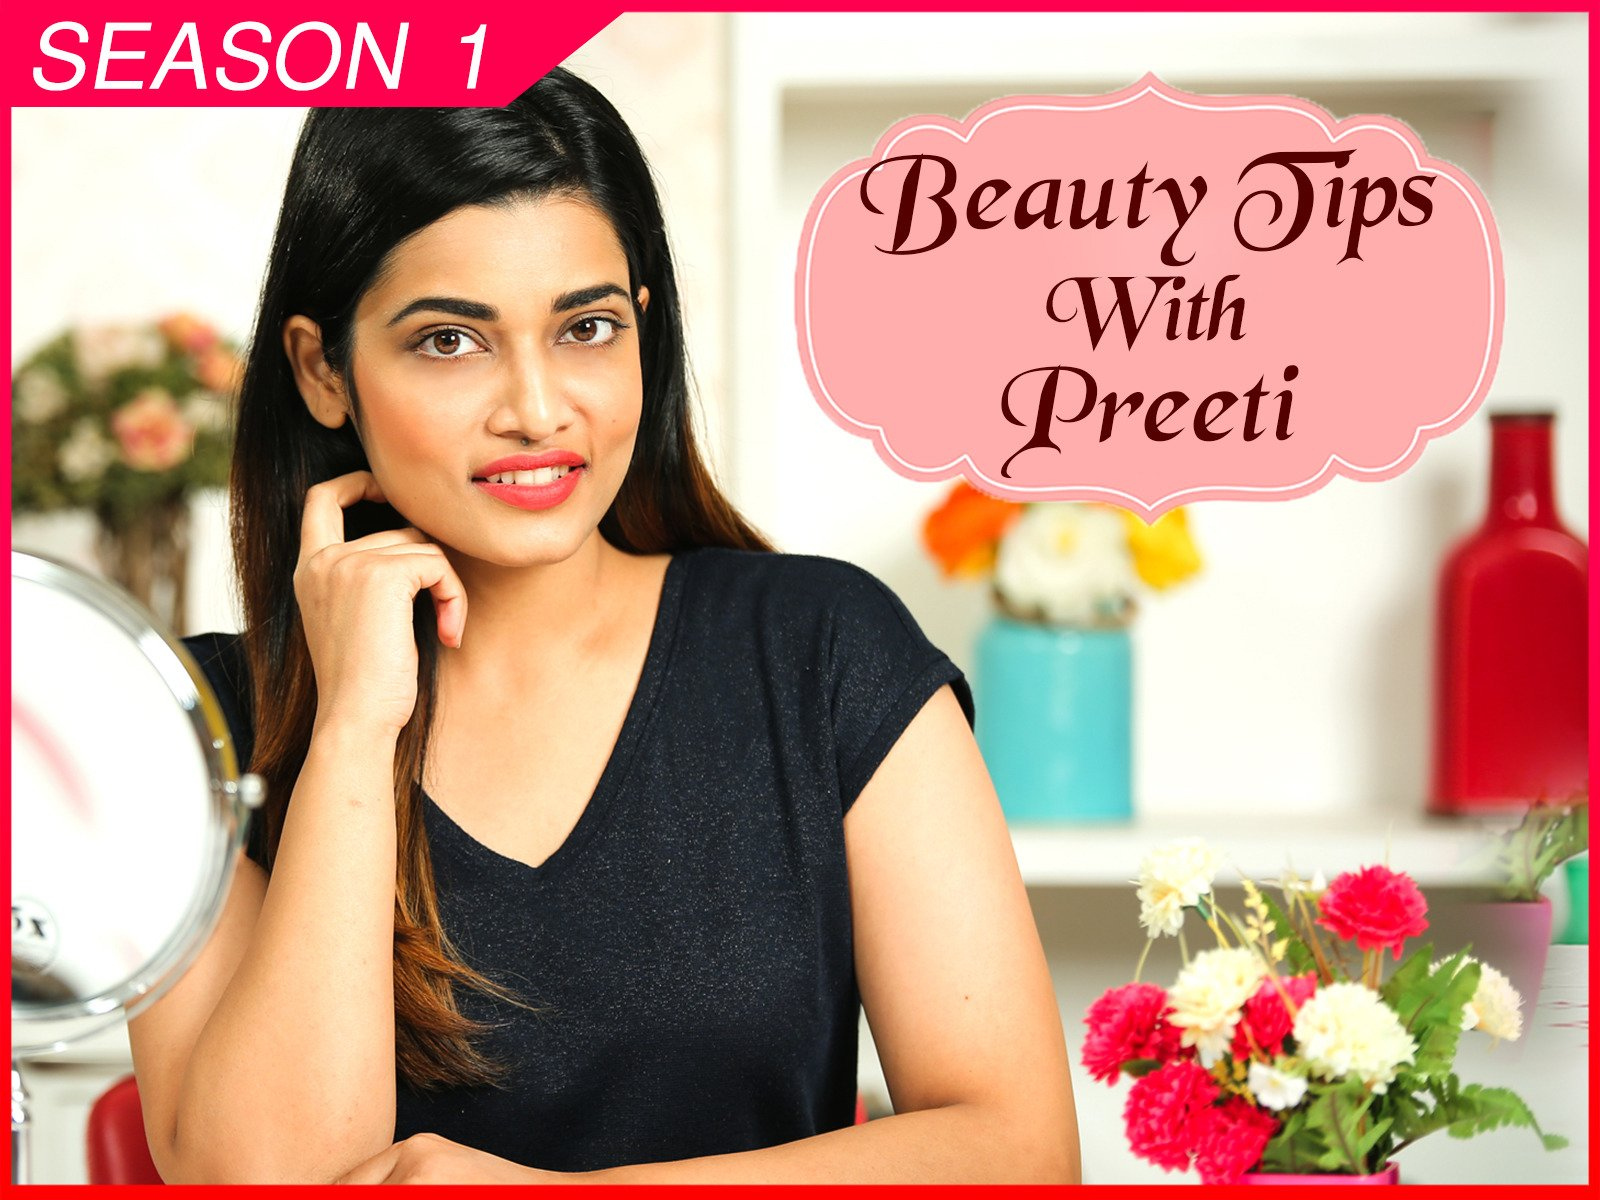 Clip: Beauty Tips With Preeti - Season 1